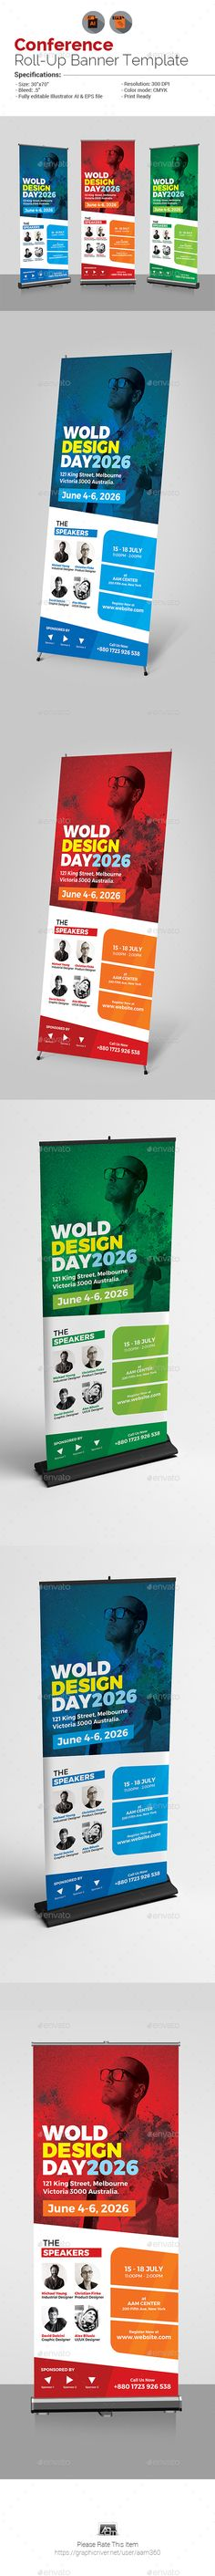 Conference / Event Roll-Up Banner Template Vector EPS, AI Illustrator